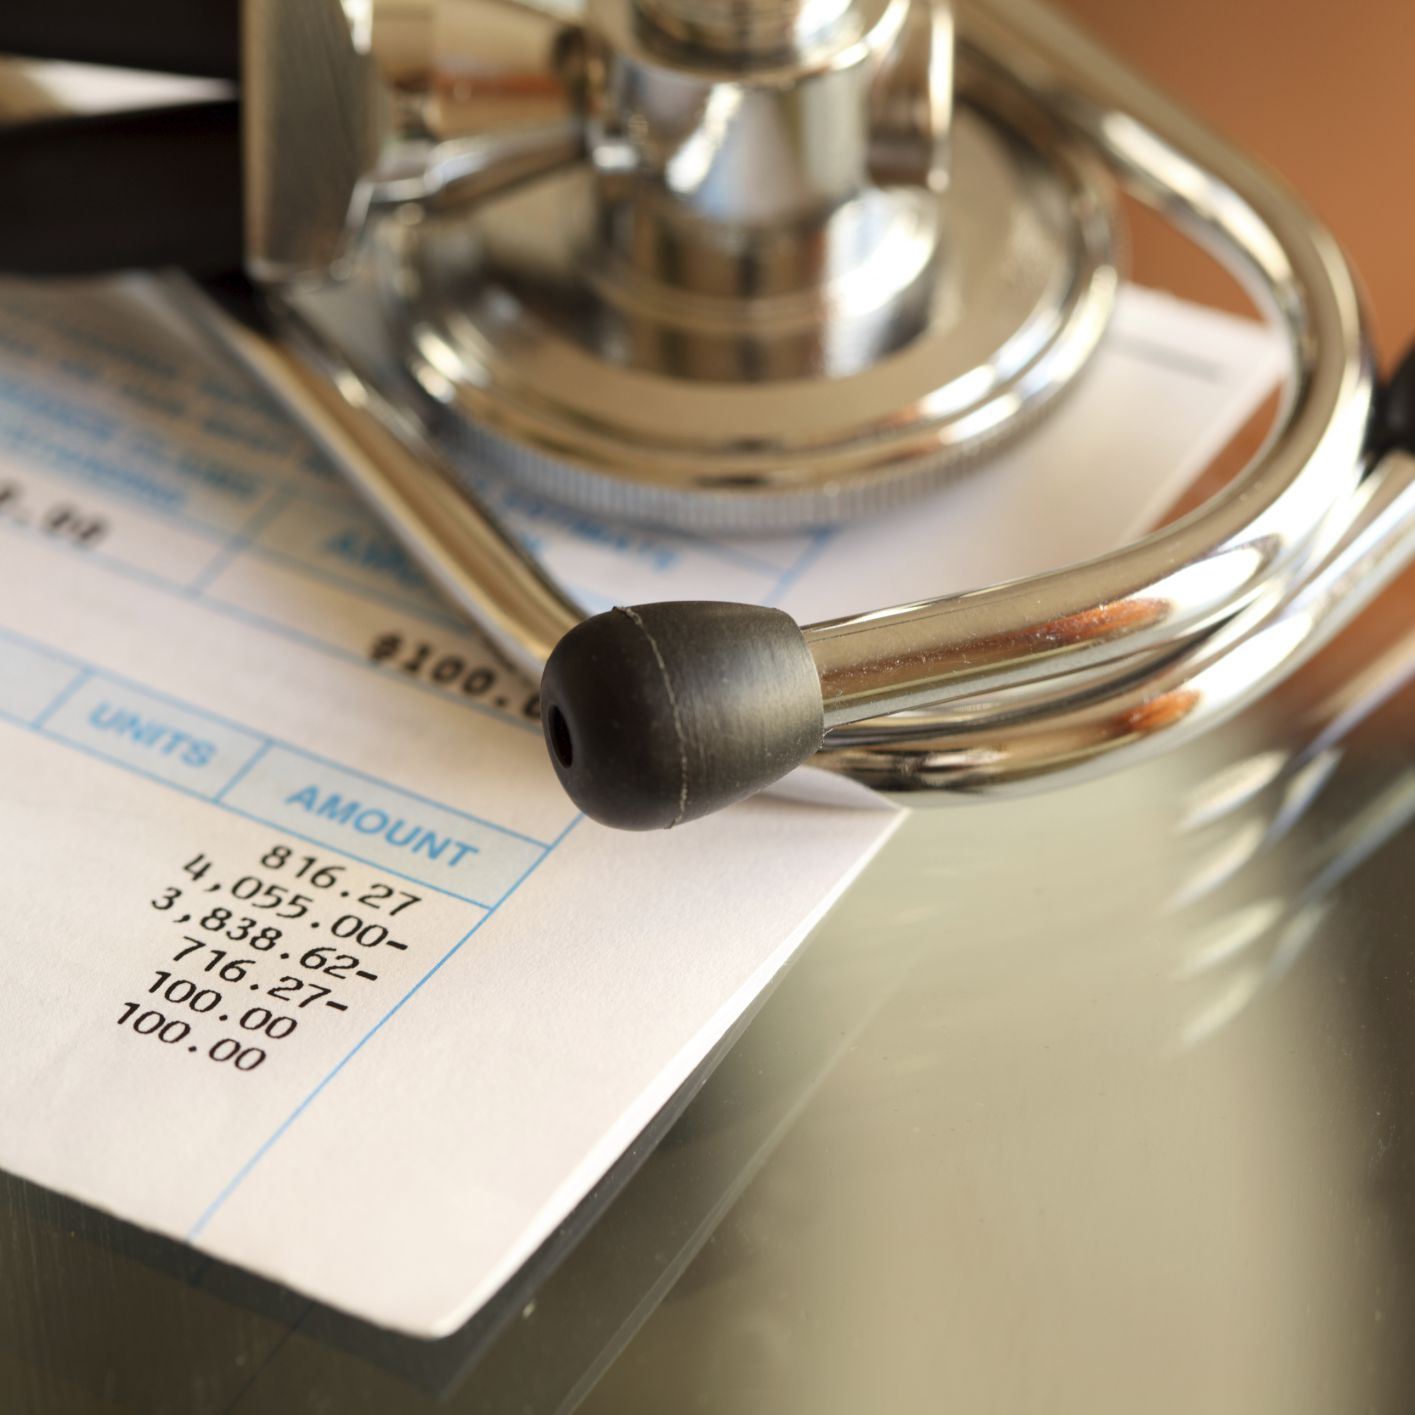 How Do I Pay My Medical Bills During a Lawsuit?